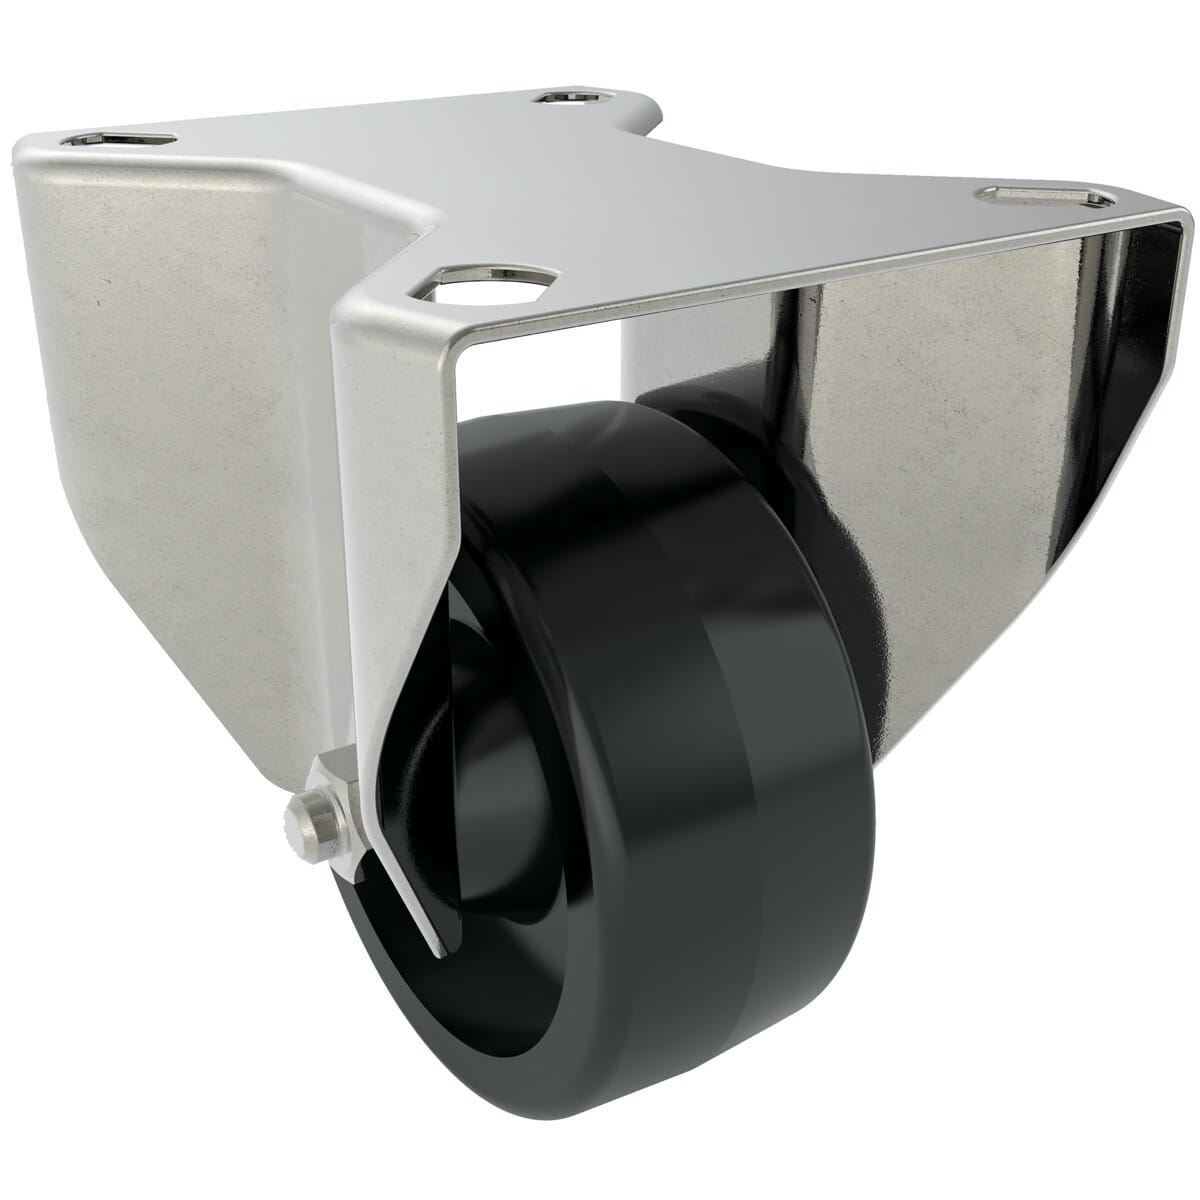 80mm x 35mm x 108mm x 9mm Industrial Castors With Fixed Plate - Stainless Steel Housing With Black Phenolic Wheel